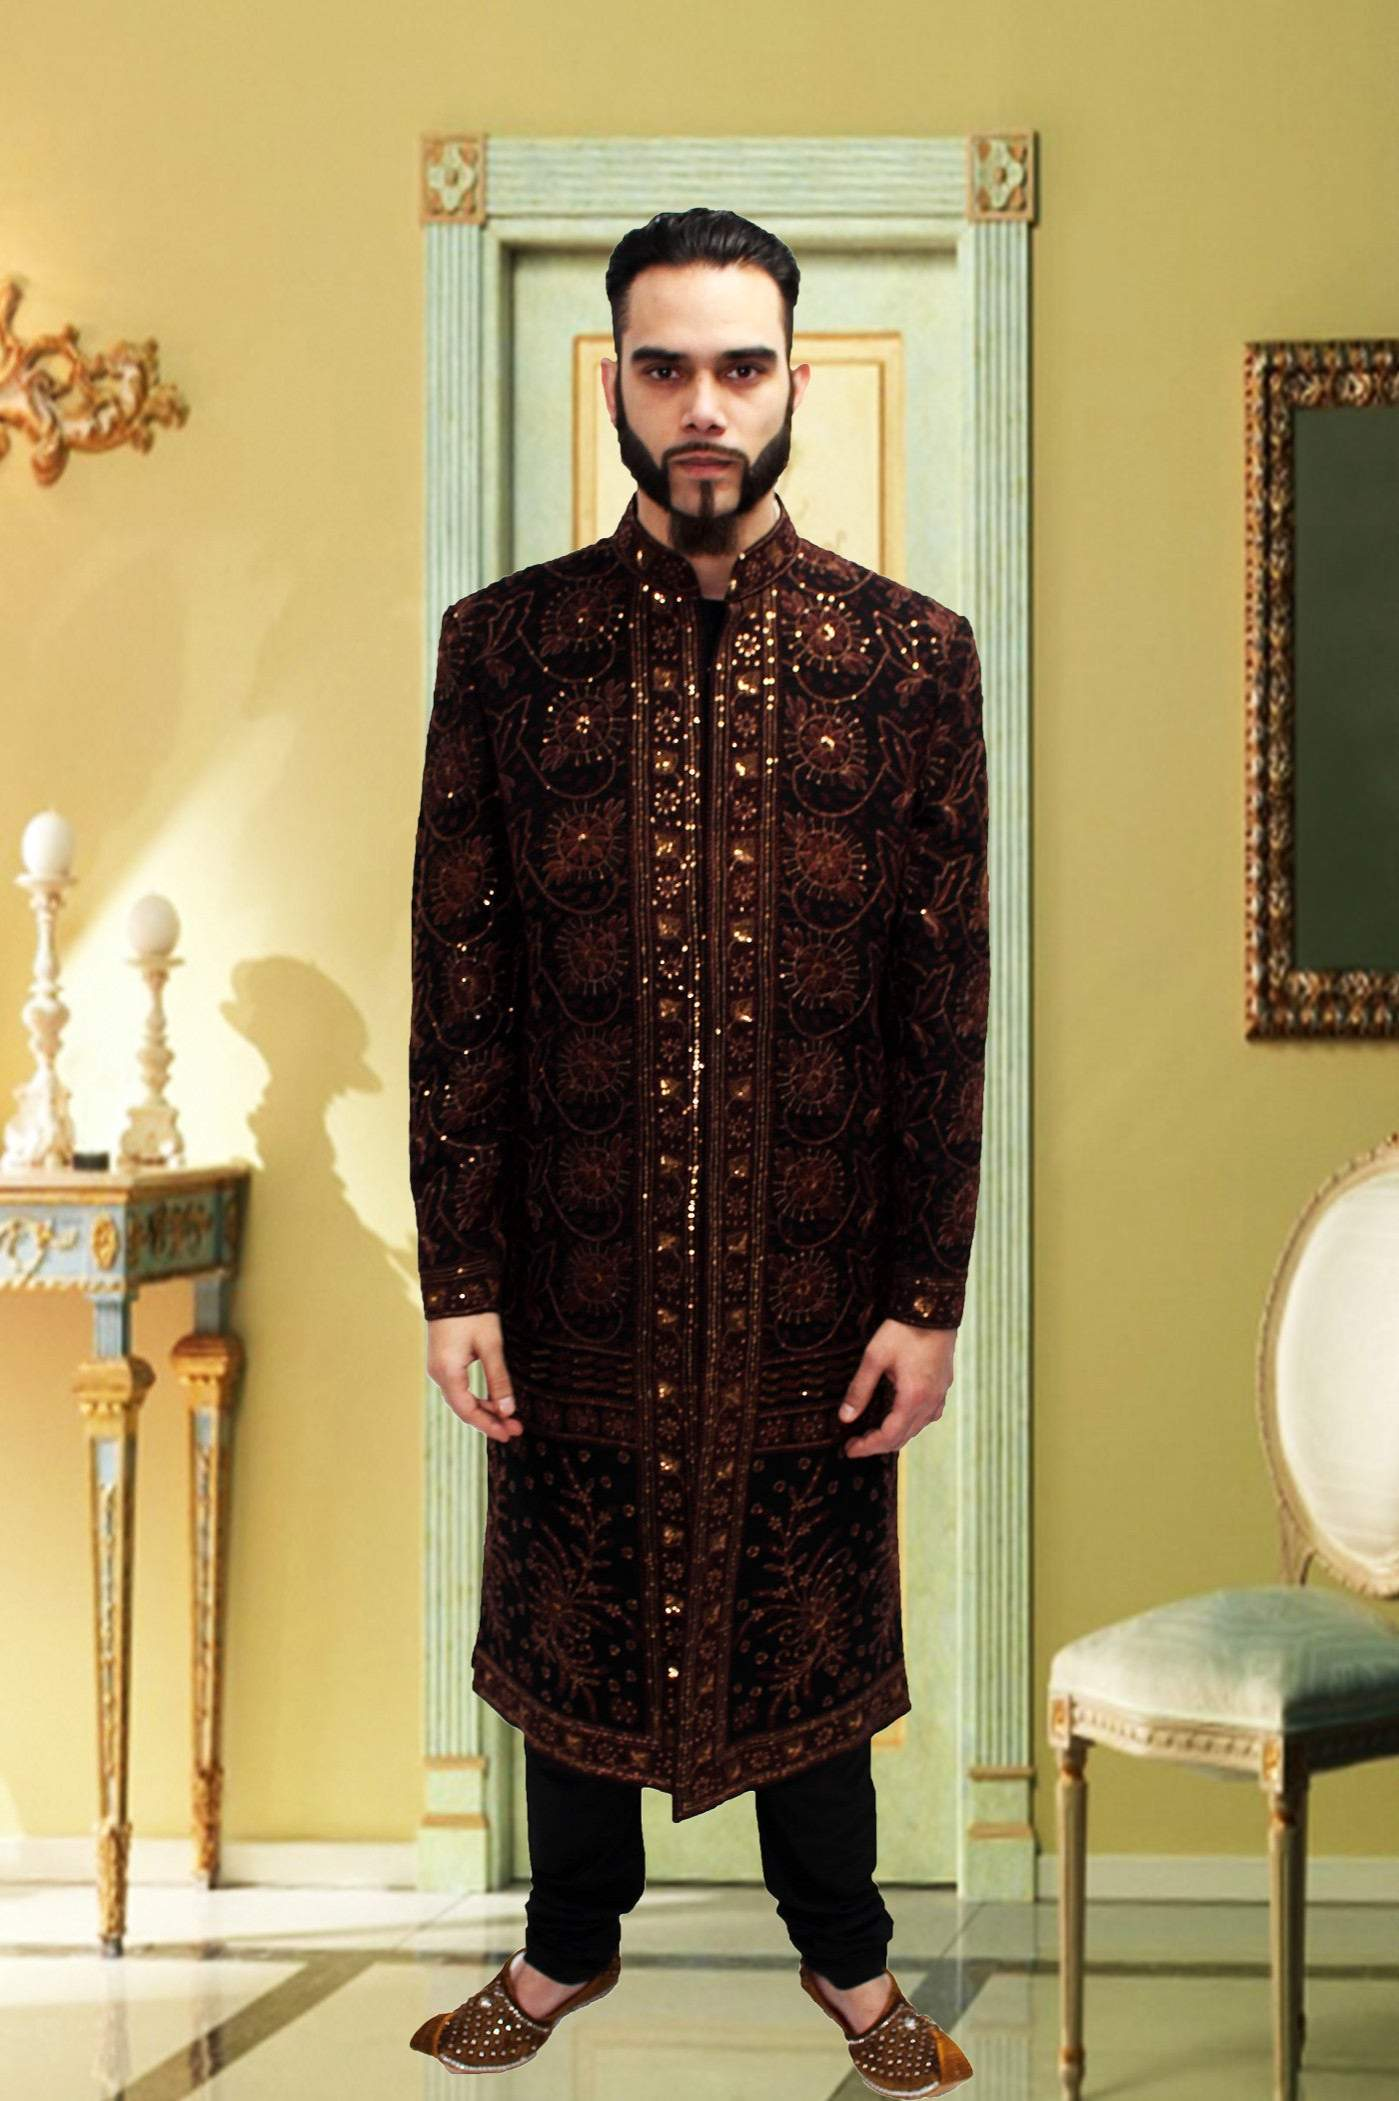 Black Sherwani With Rich Gold And Brown Embroidery